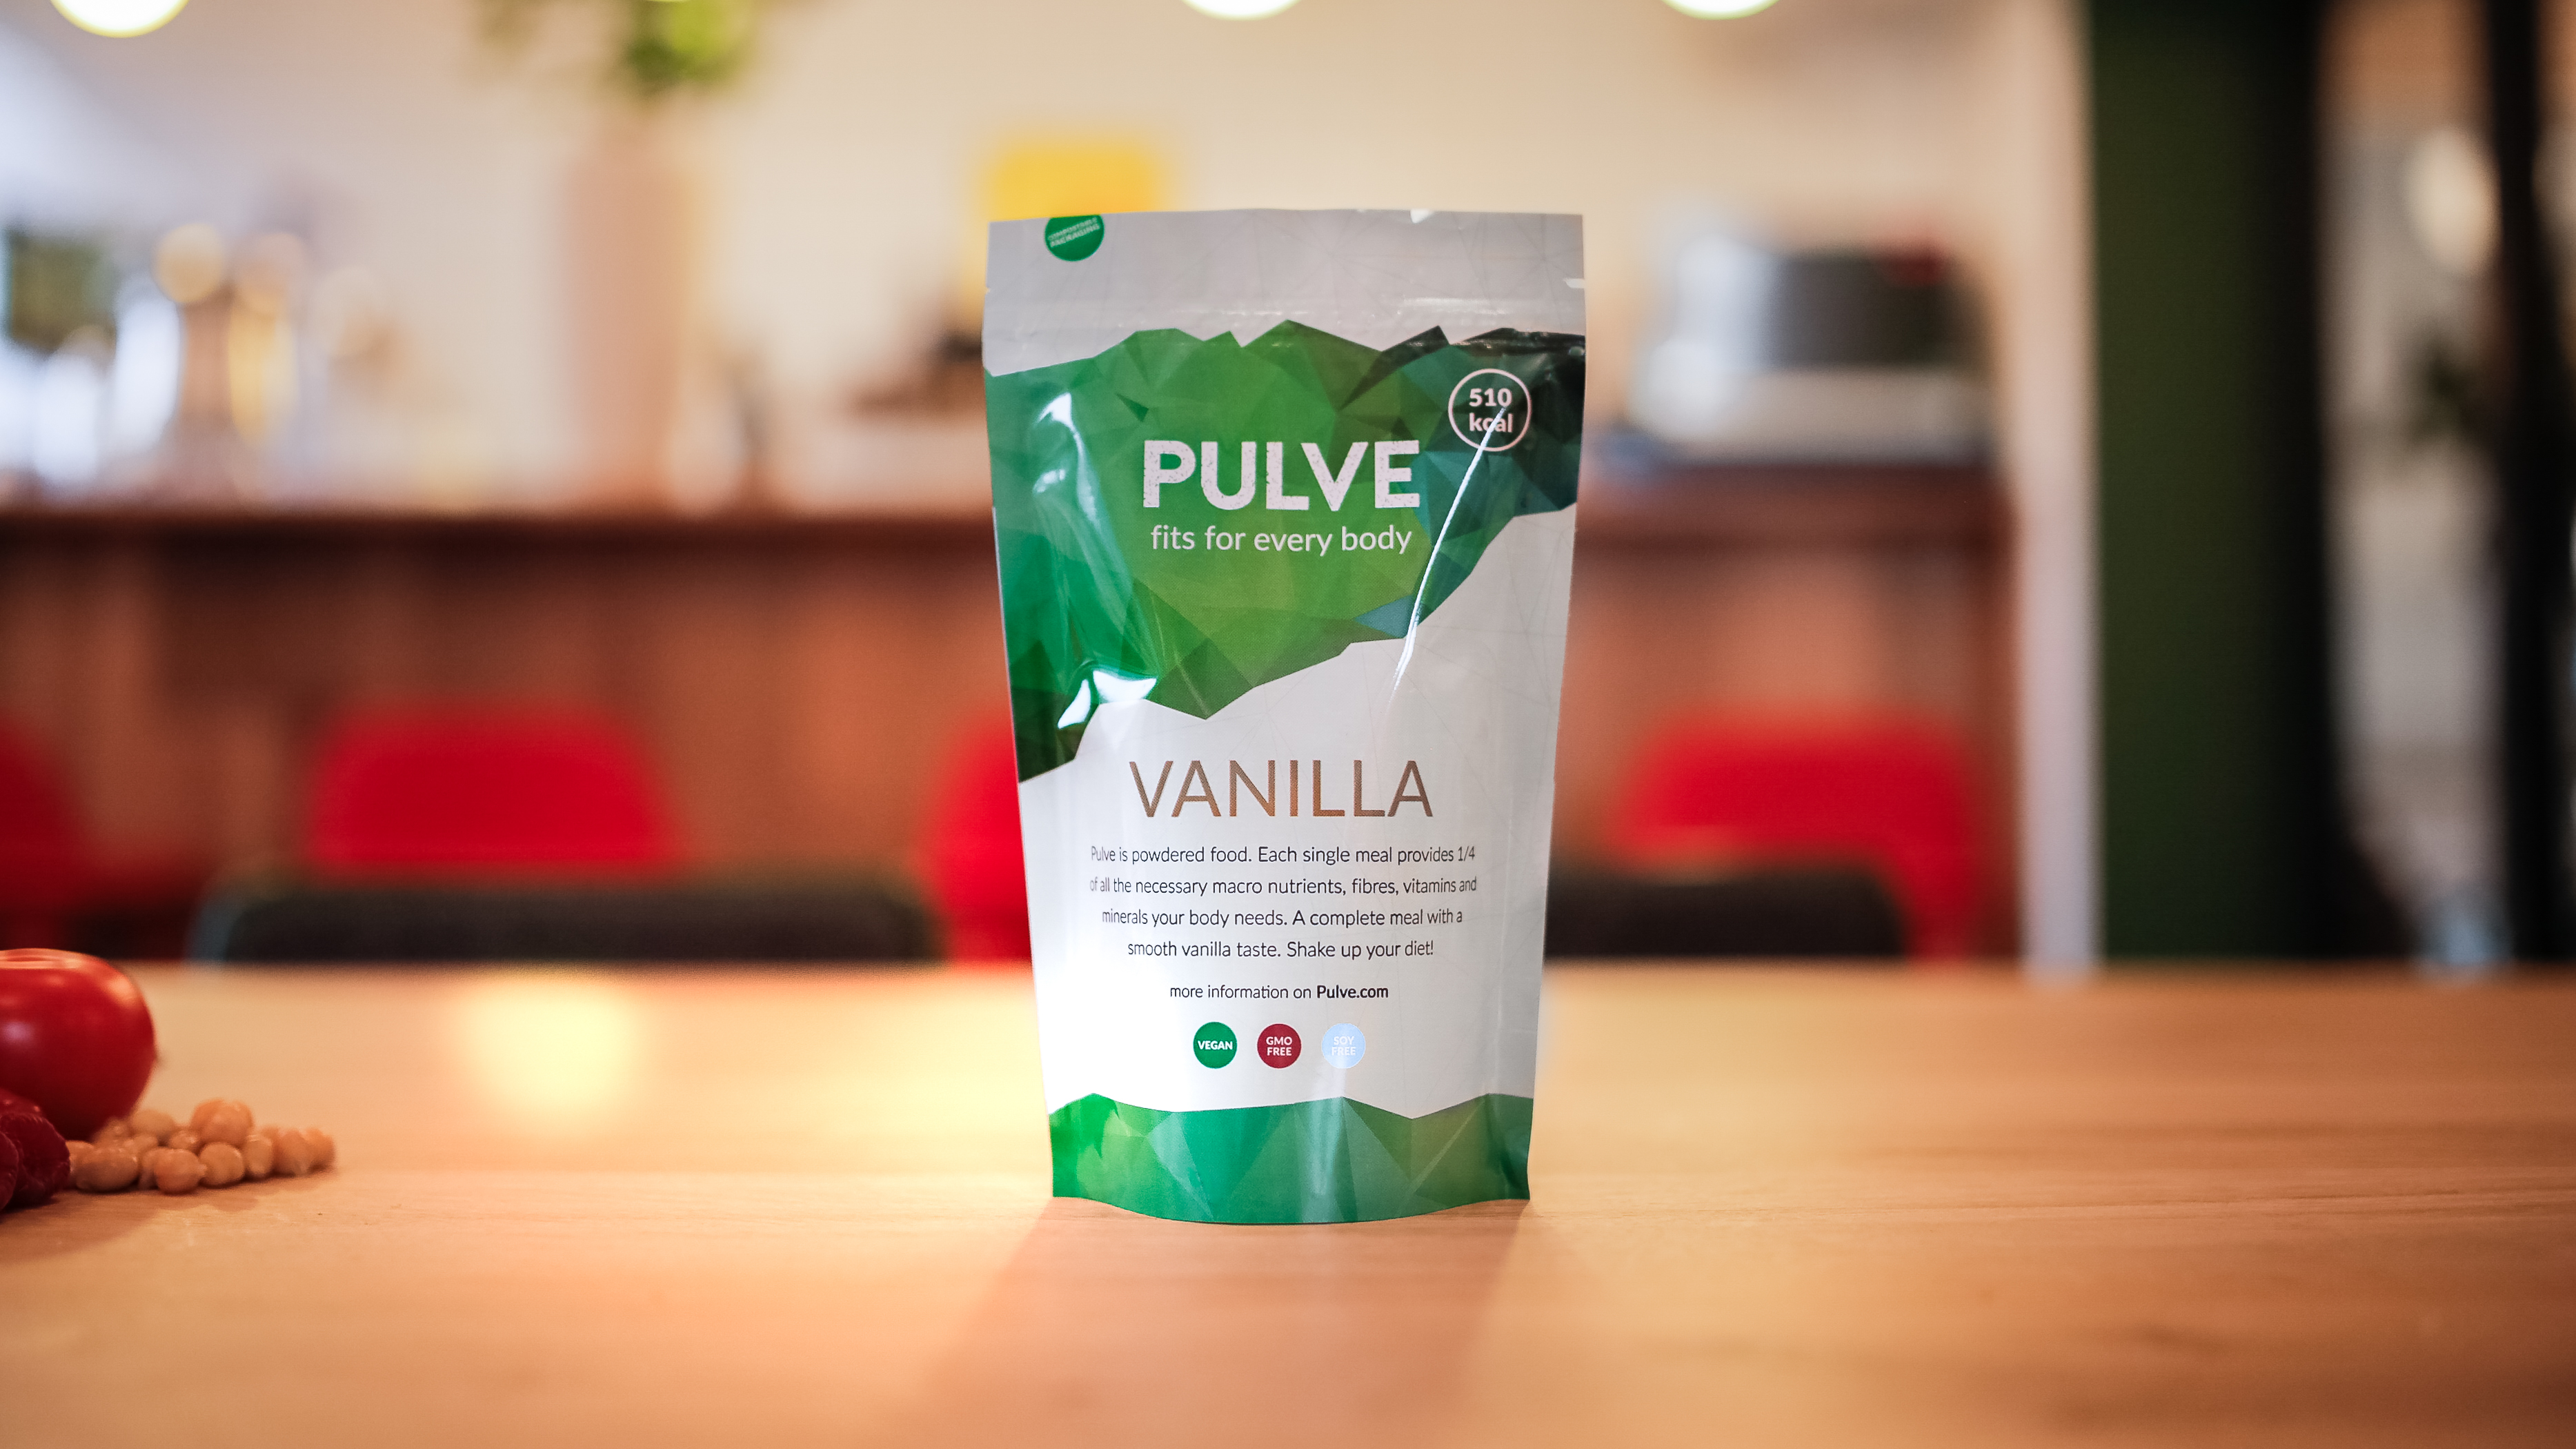 Success Story of Pulve Drinkable Meals